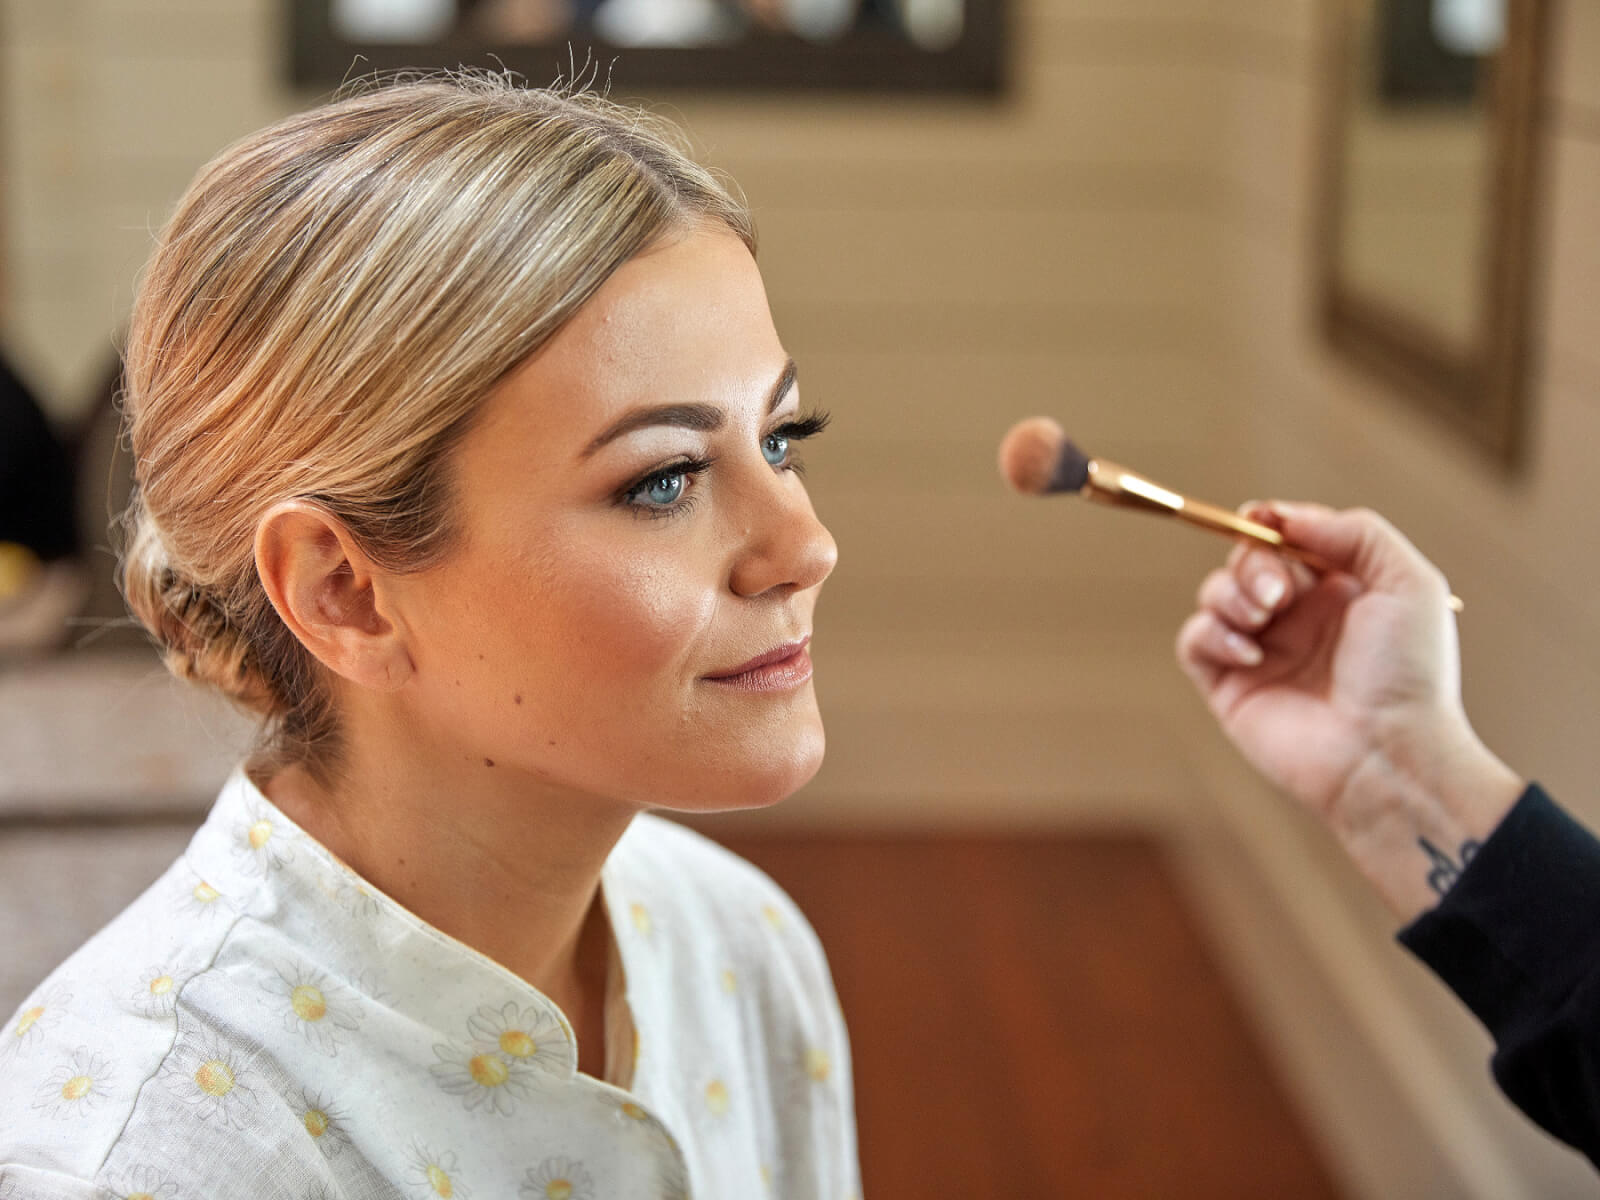 Kirby having her makeup done on her wedding day